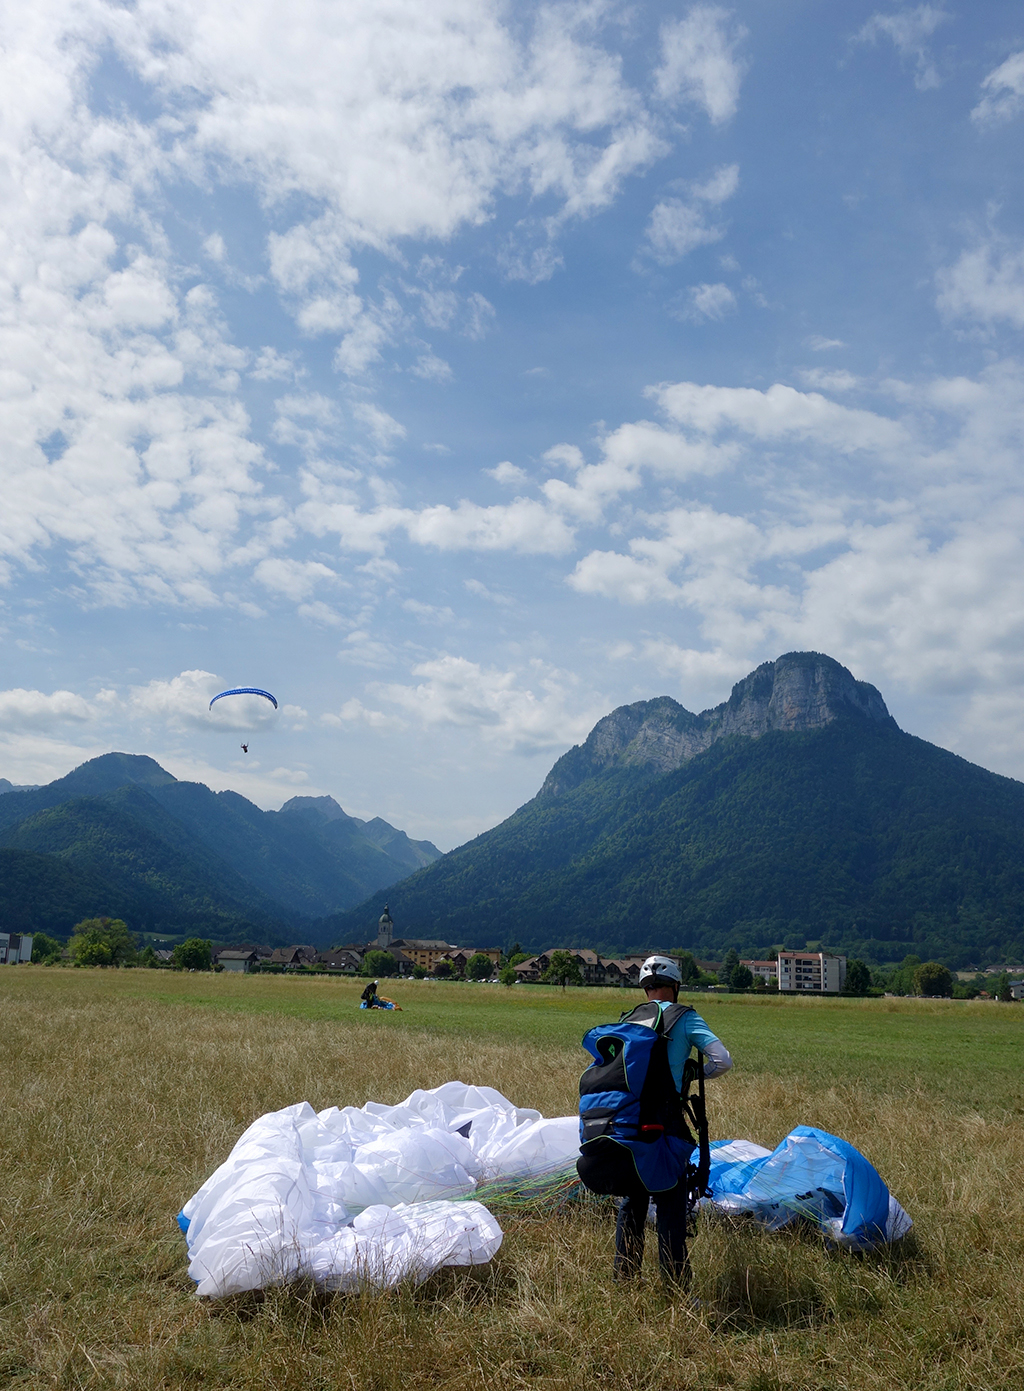 On safe ground after paragliding